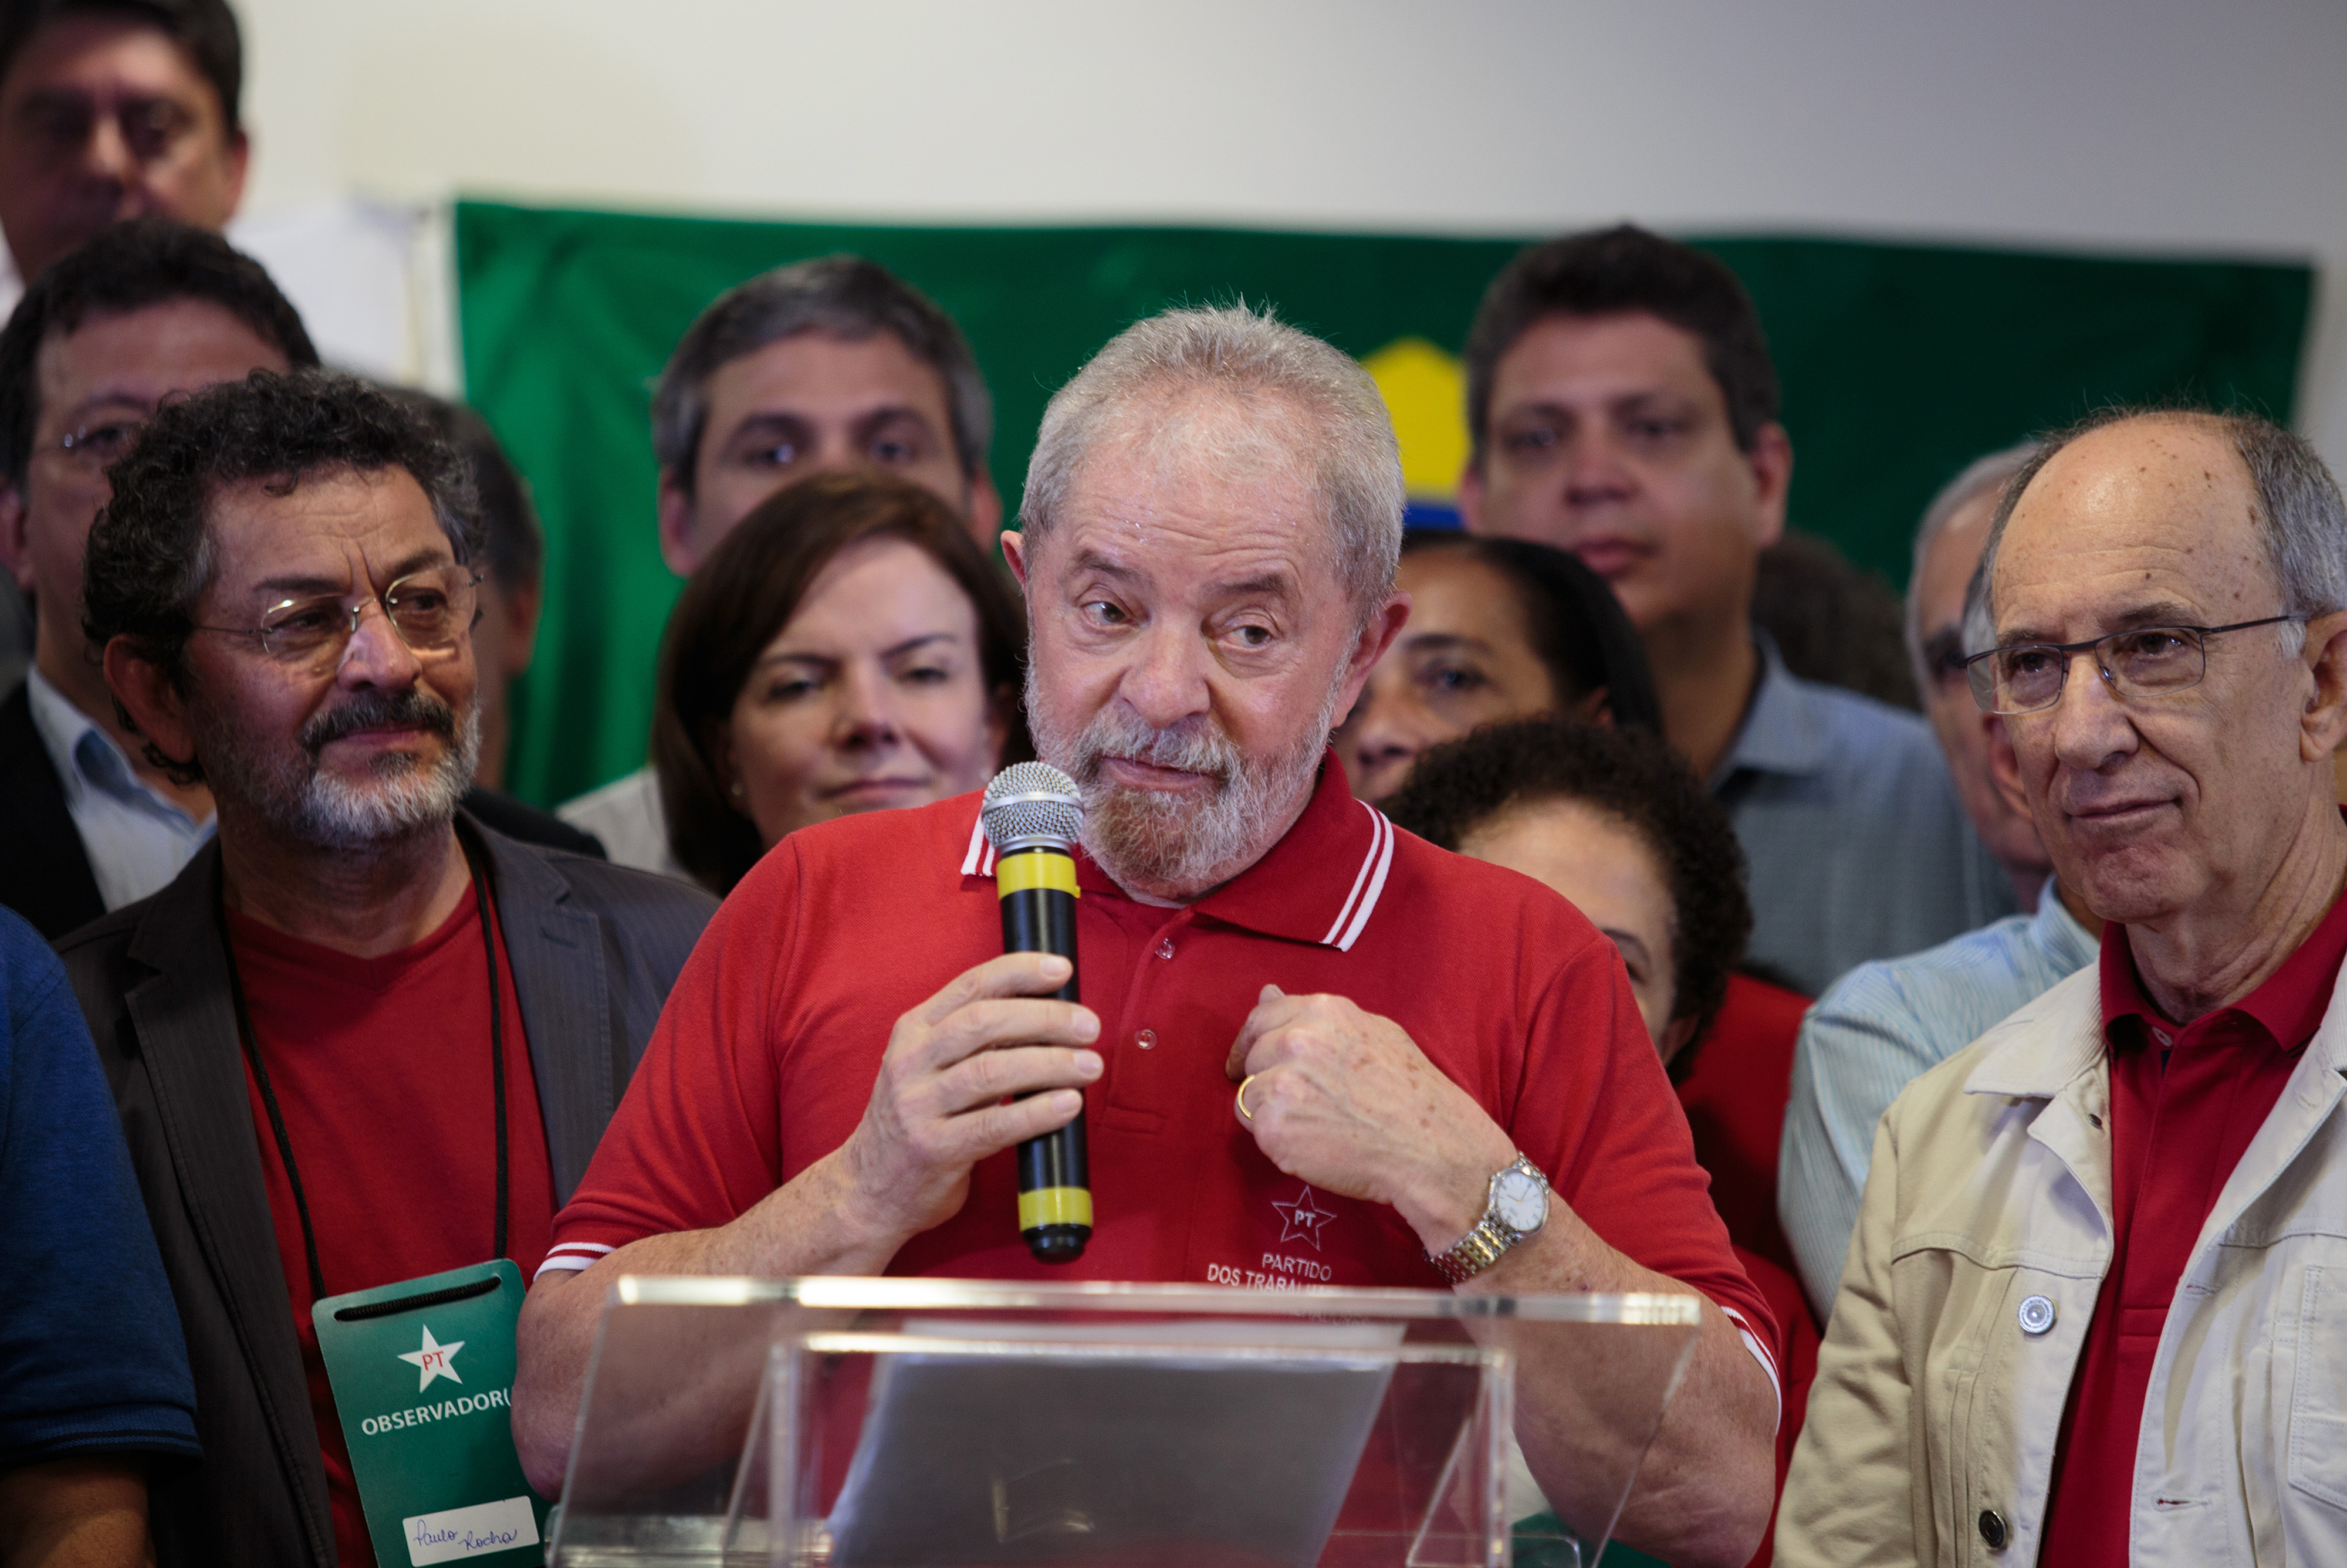 Luiz Inacio Lula da Silva, former president of Brazil, gestures while speaking during a news conference in Sao Paulo, Brazil, on Sept 15, 2016. Lula fought back against charges of corruption and money laundering a day after federal prosecutors accused him of directing the biggest corruption scheme in the nation's history.